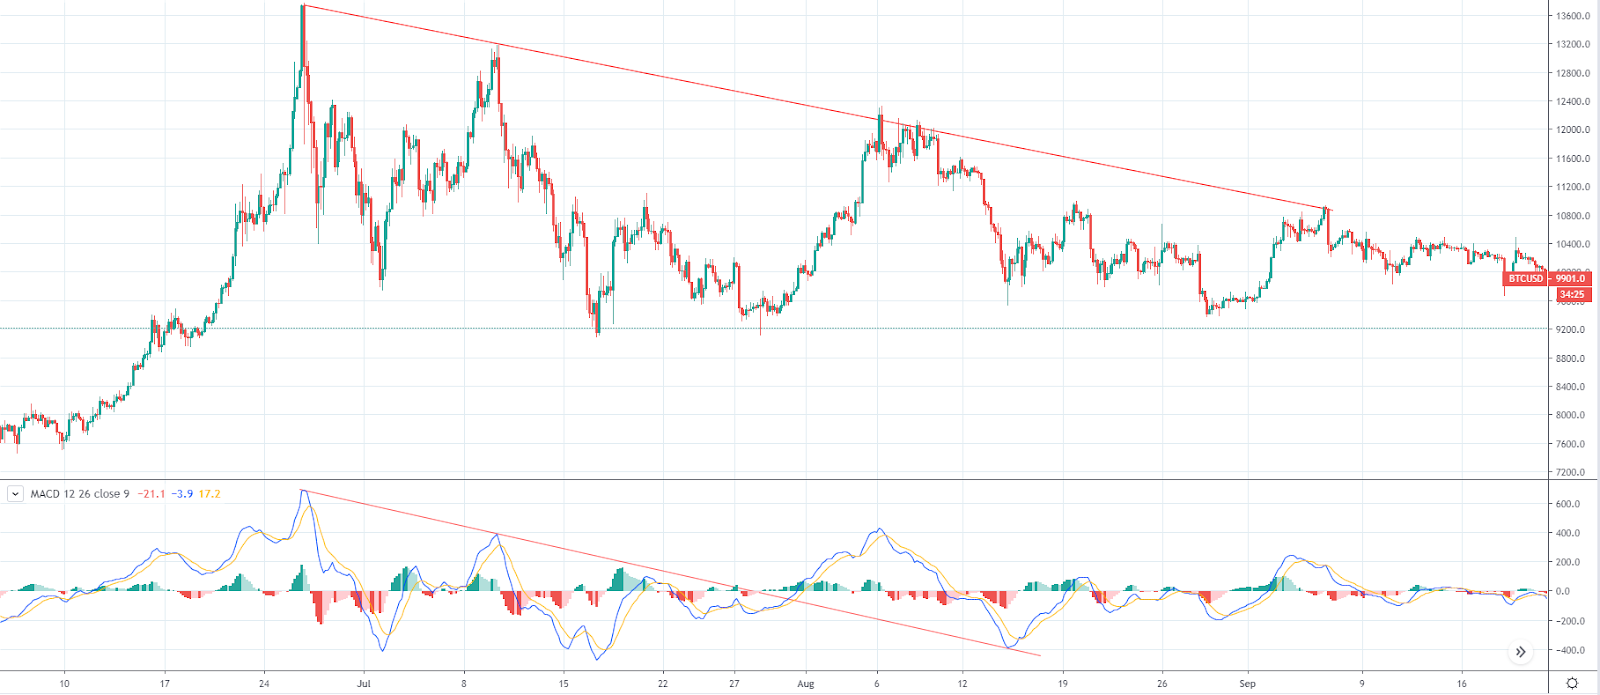 MACD bullish divergence (Source: TradingView)